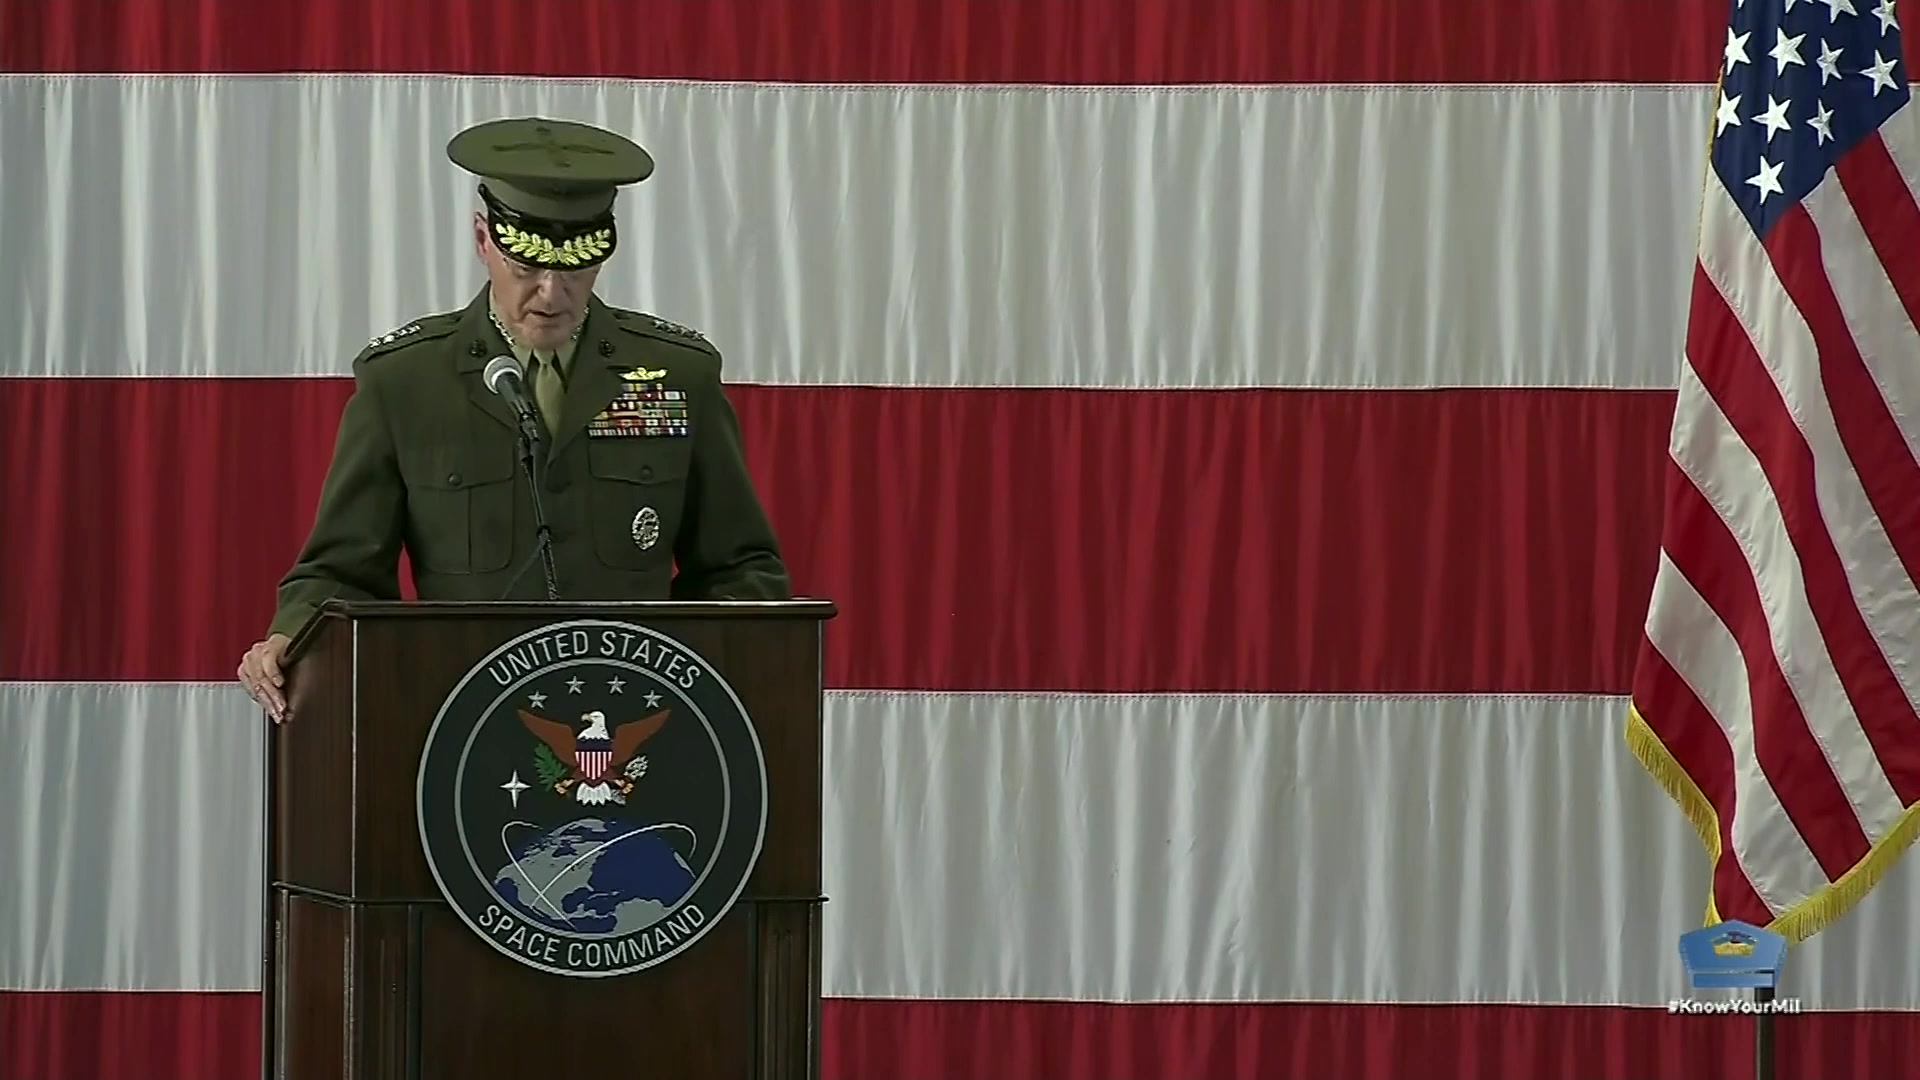 USSPACECOM Stand up ceremony at Peterson Air Force Base, Colo.